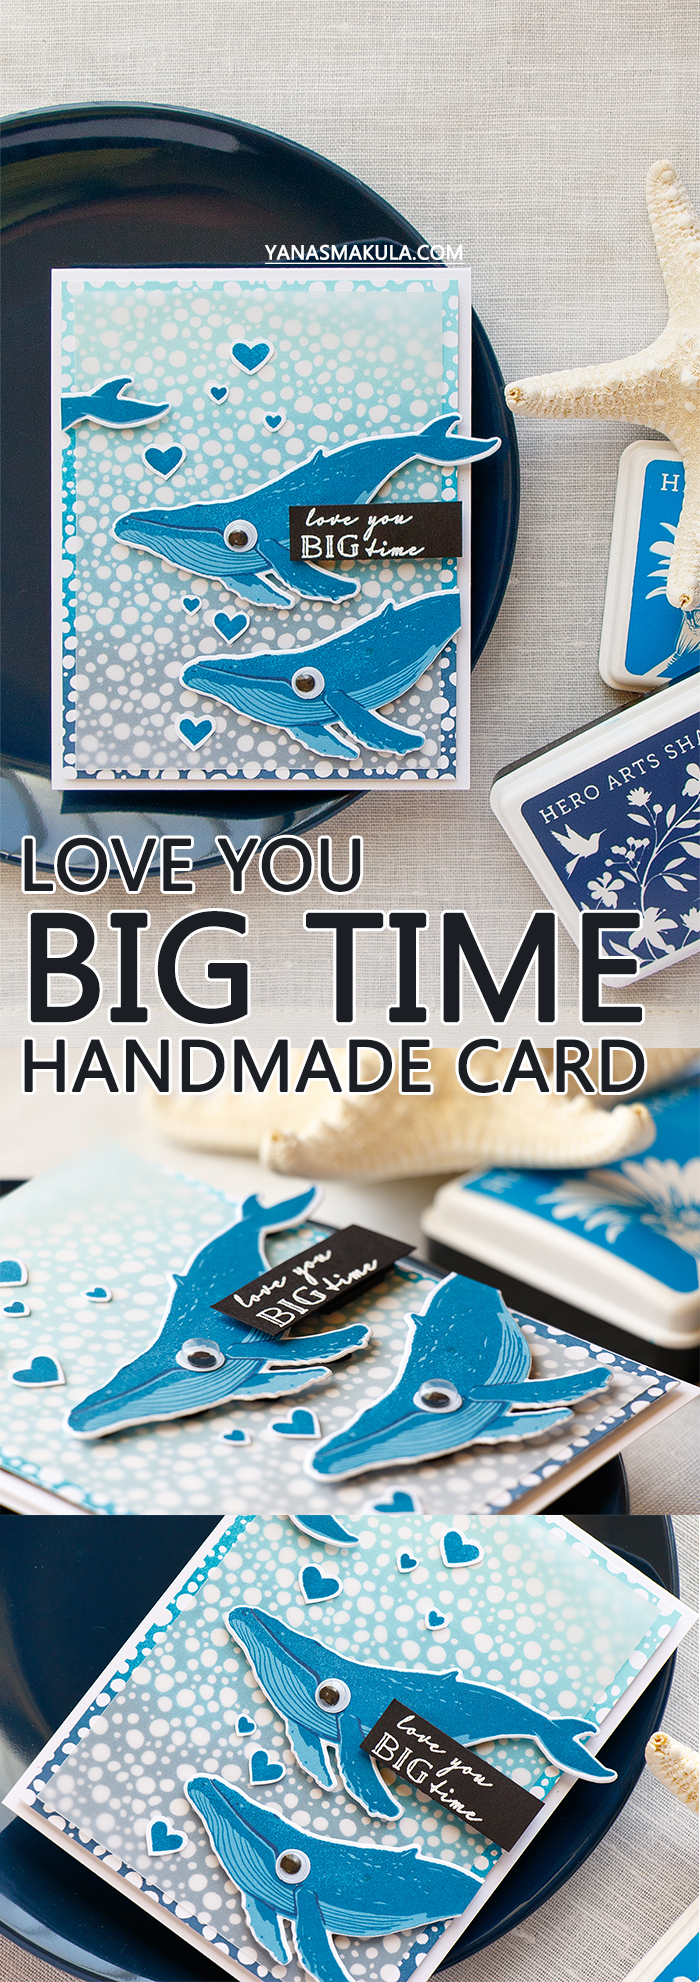 Hero Arts | Love You Big Time Card by Yana Smakula using Color Layering Blue Whale stamp set.